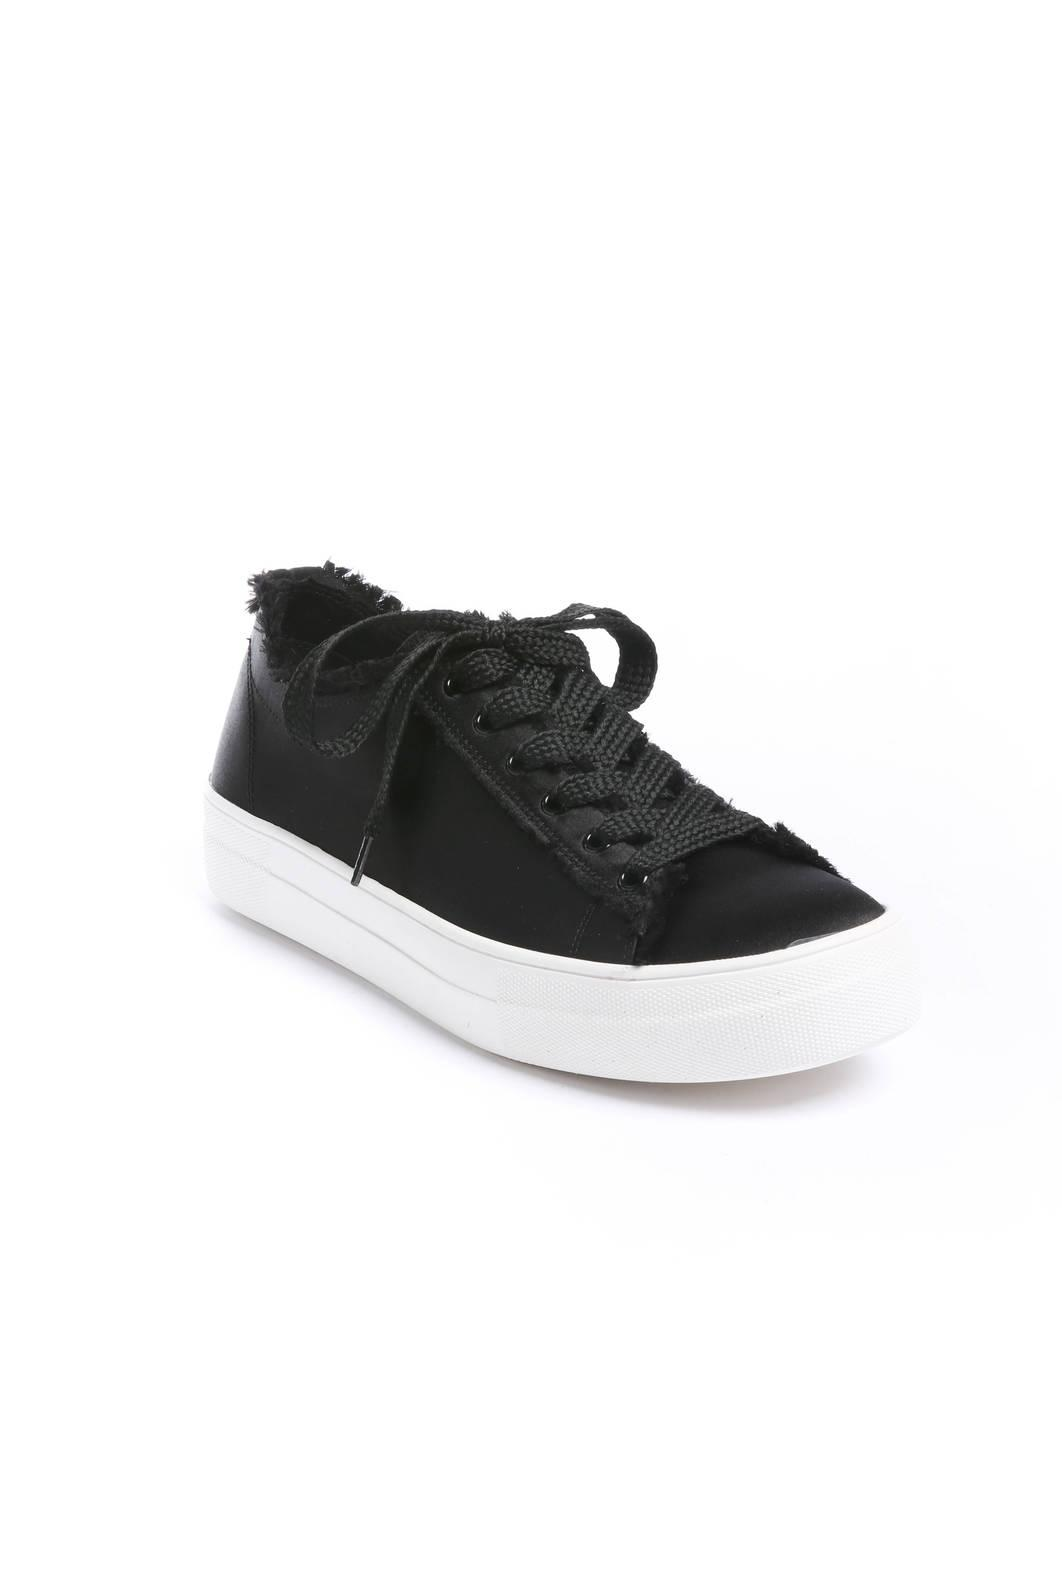 c74274d5620 Lyst - Steve Madden Greyla Lace Up Satin Sneakers in Black for Men